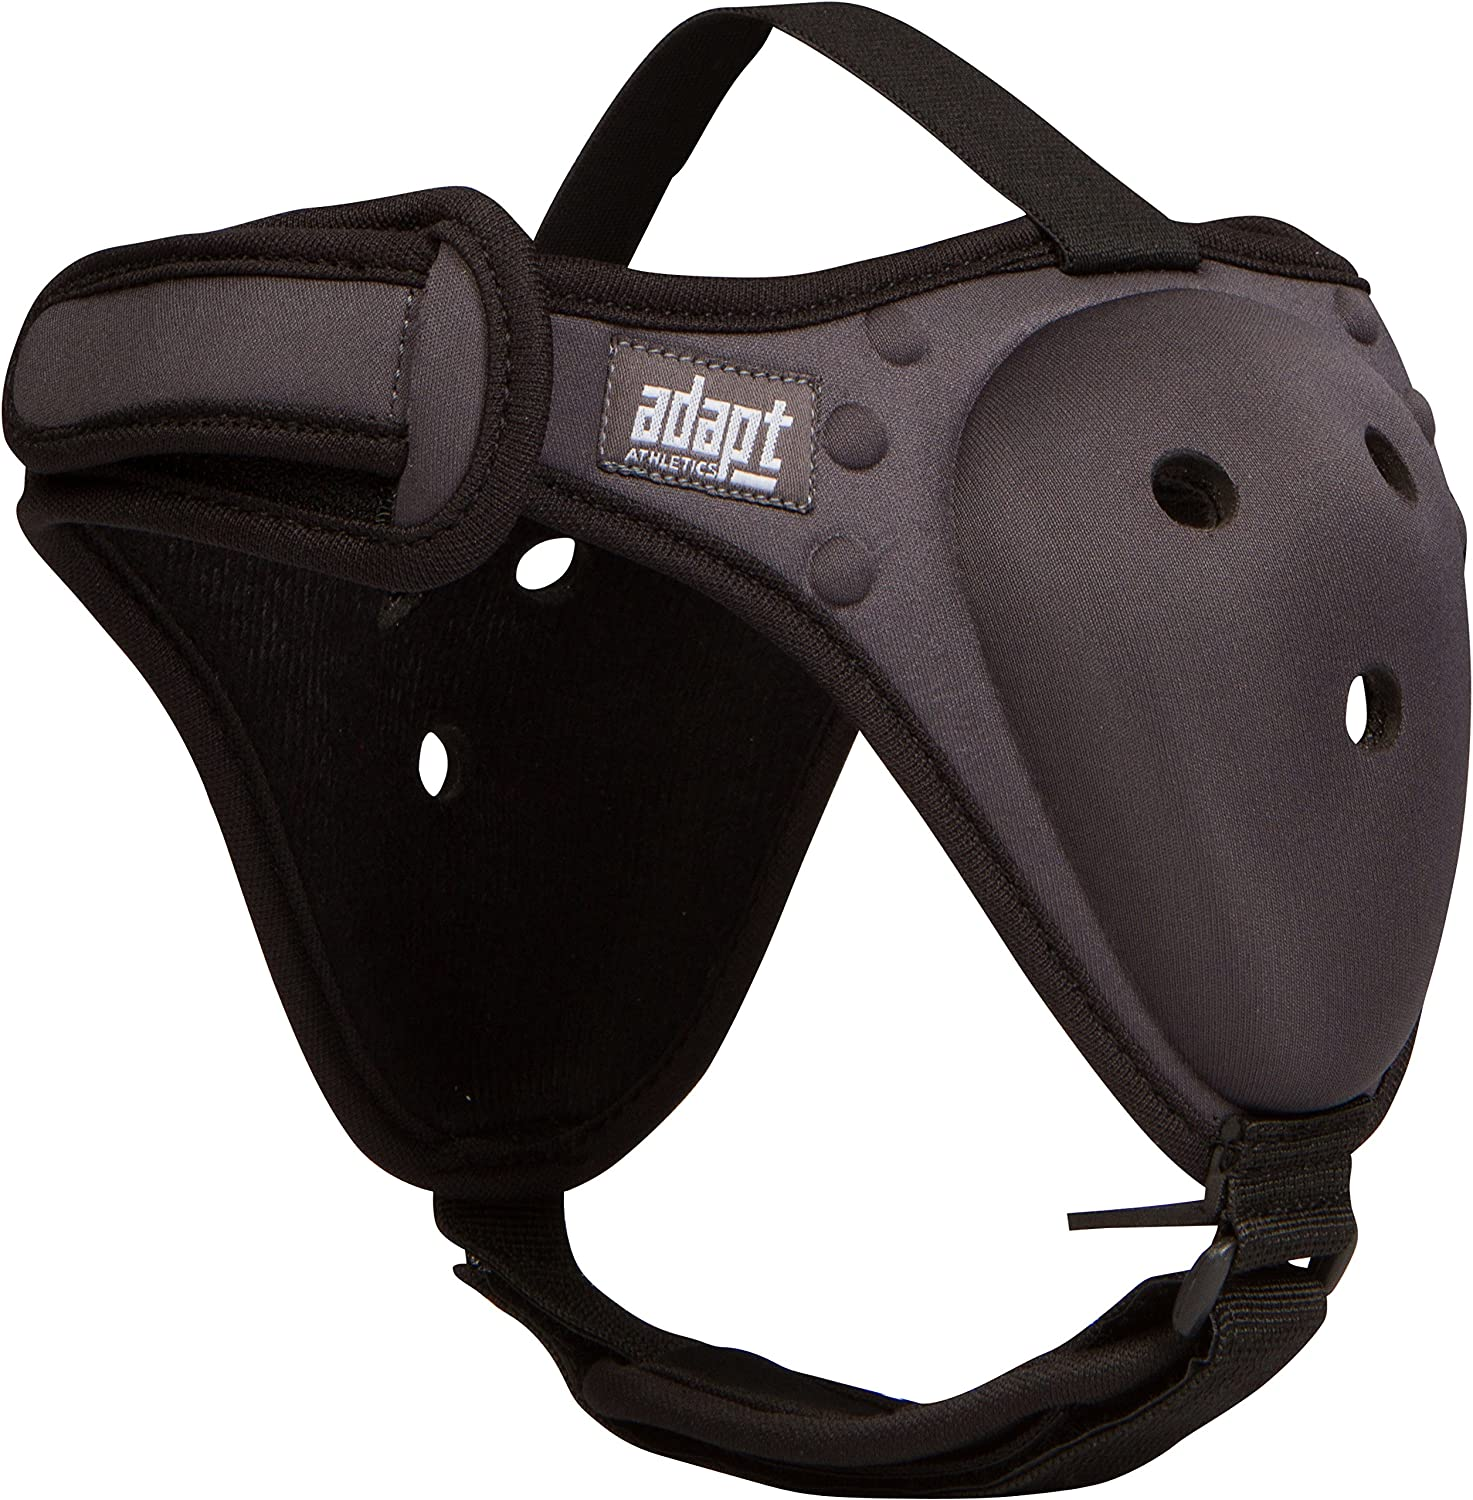 Adapt Athletics Enhanced Headgear for Wrestling, BJJ, & MMA Ear Protection: Extra Strong Stitching, Comfortable Chin Strap, Machine Washable, New Easy to Adjust Design One Size Fits Most (Dark Gray) : Sports & Outdoors